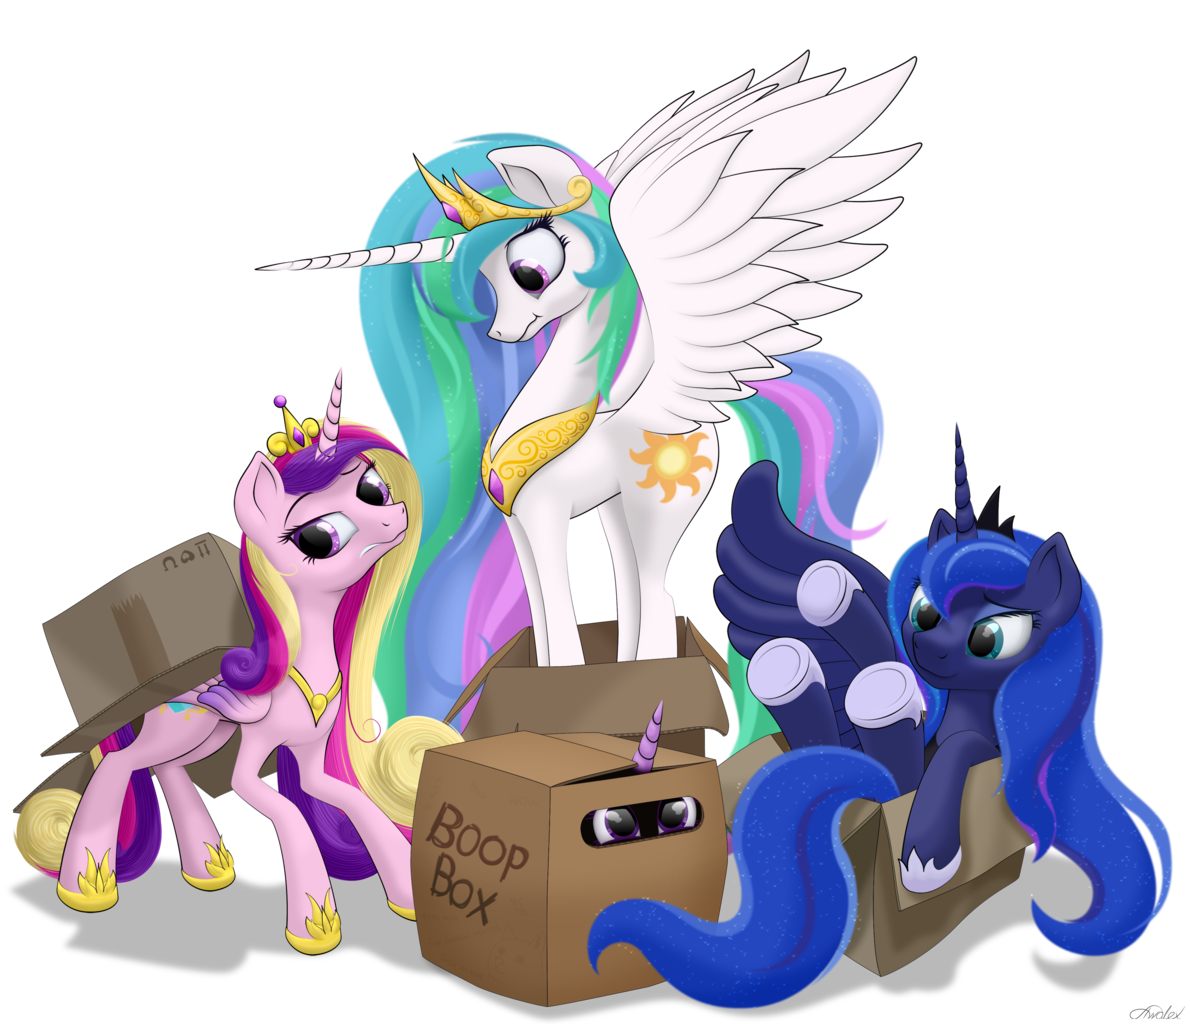 1610848 - safe, artist:awalex, princess cadance, princess celestia,  princess luna, twilight sparkle, alicorn, cat, cat pony, original species,  pony, alicorn tetrarchy, behaving like a cat, boop box, box, butt,  cadabetes, caddybetes, cardboard